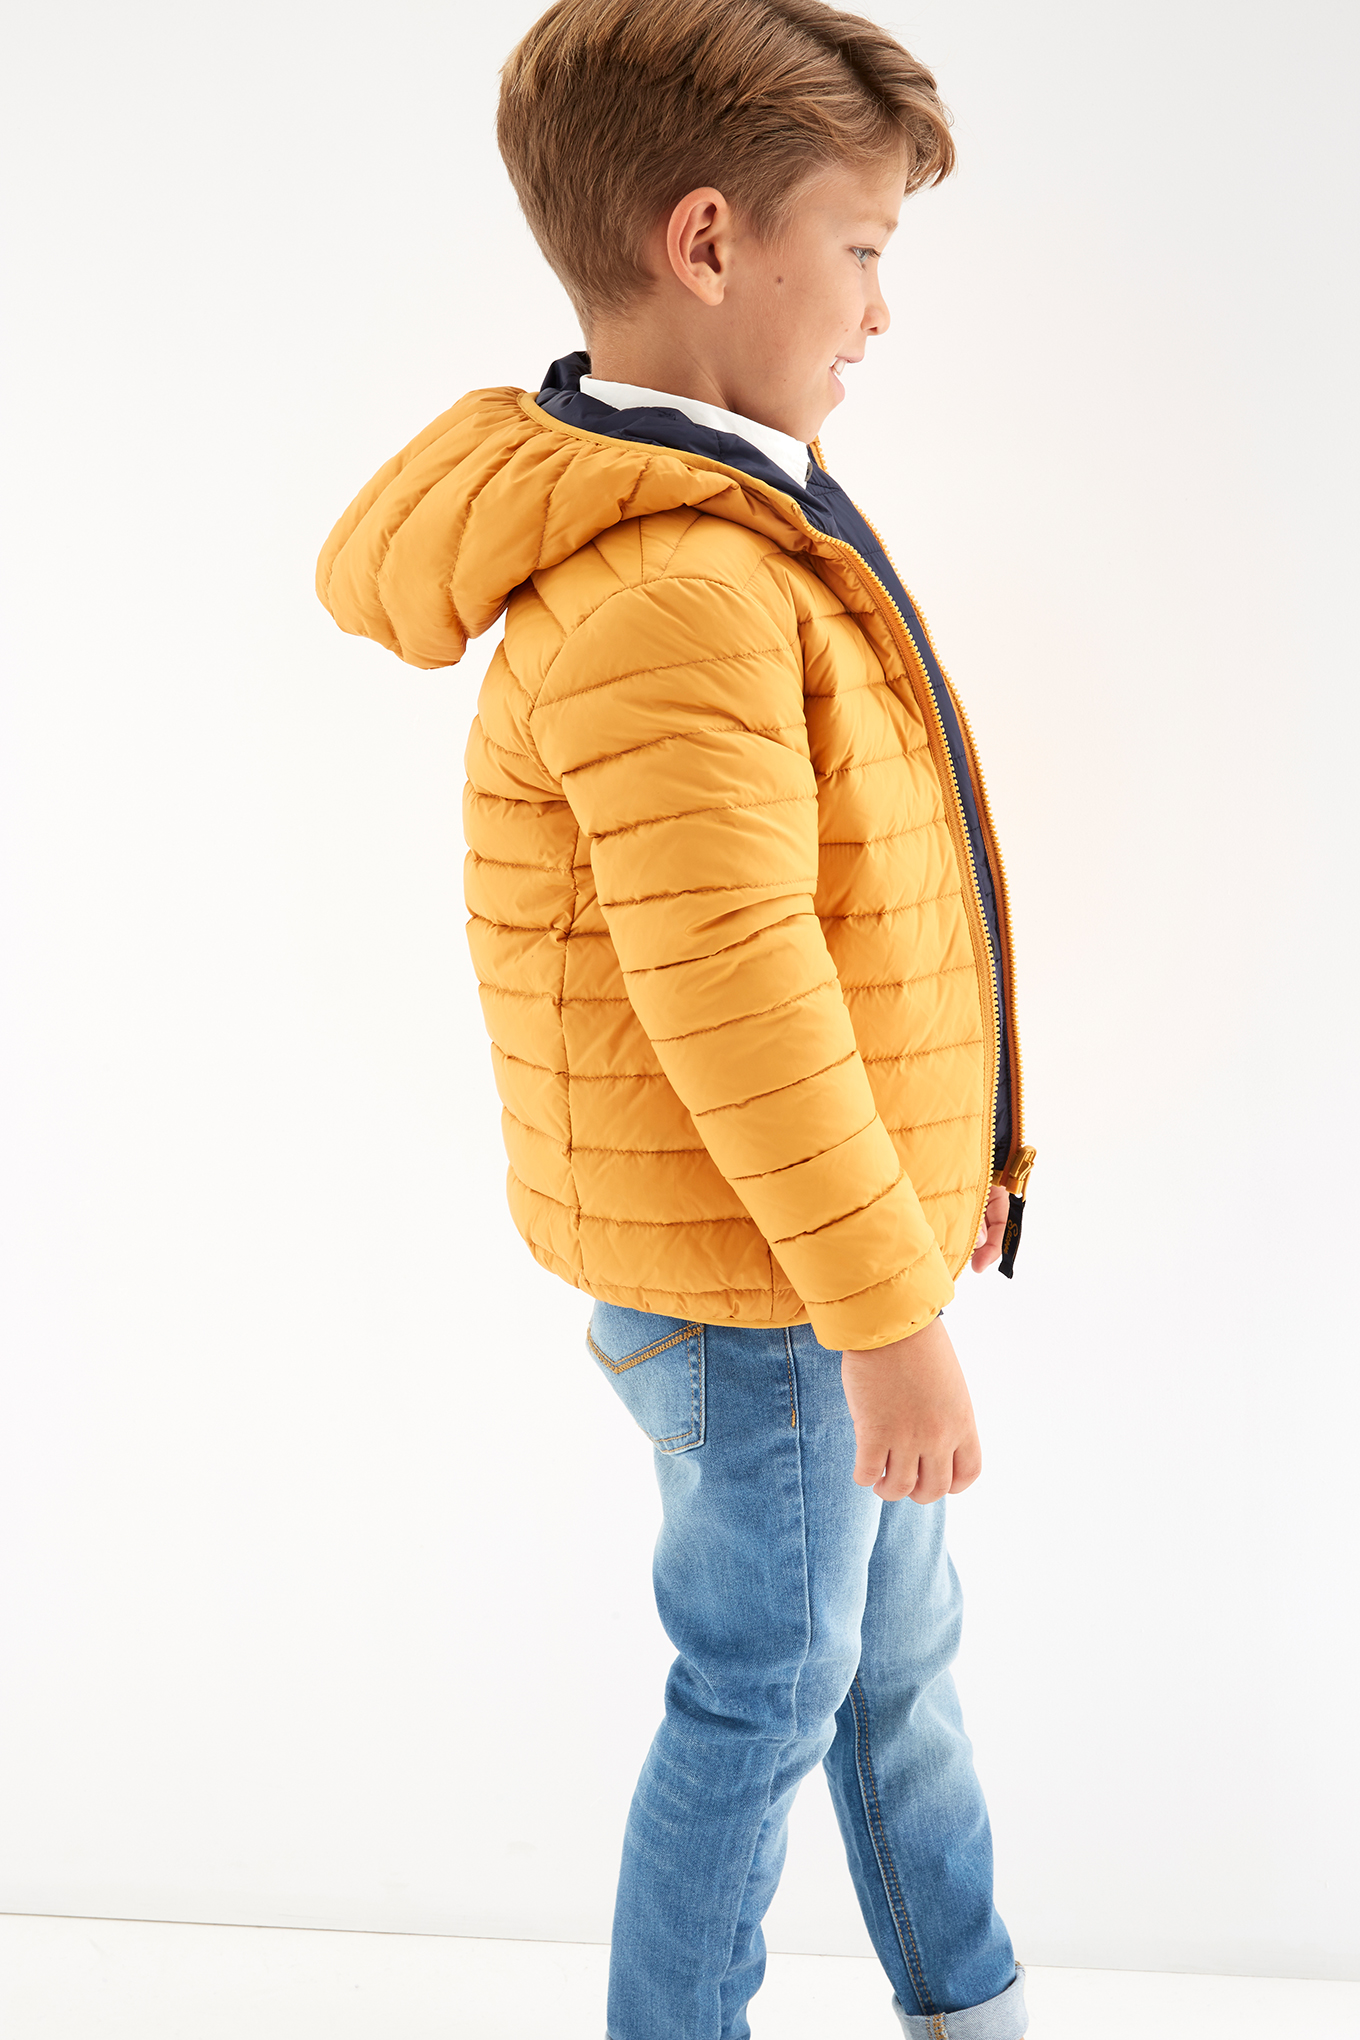 Jacket Yellow Casual Boy